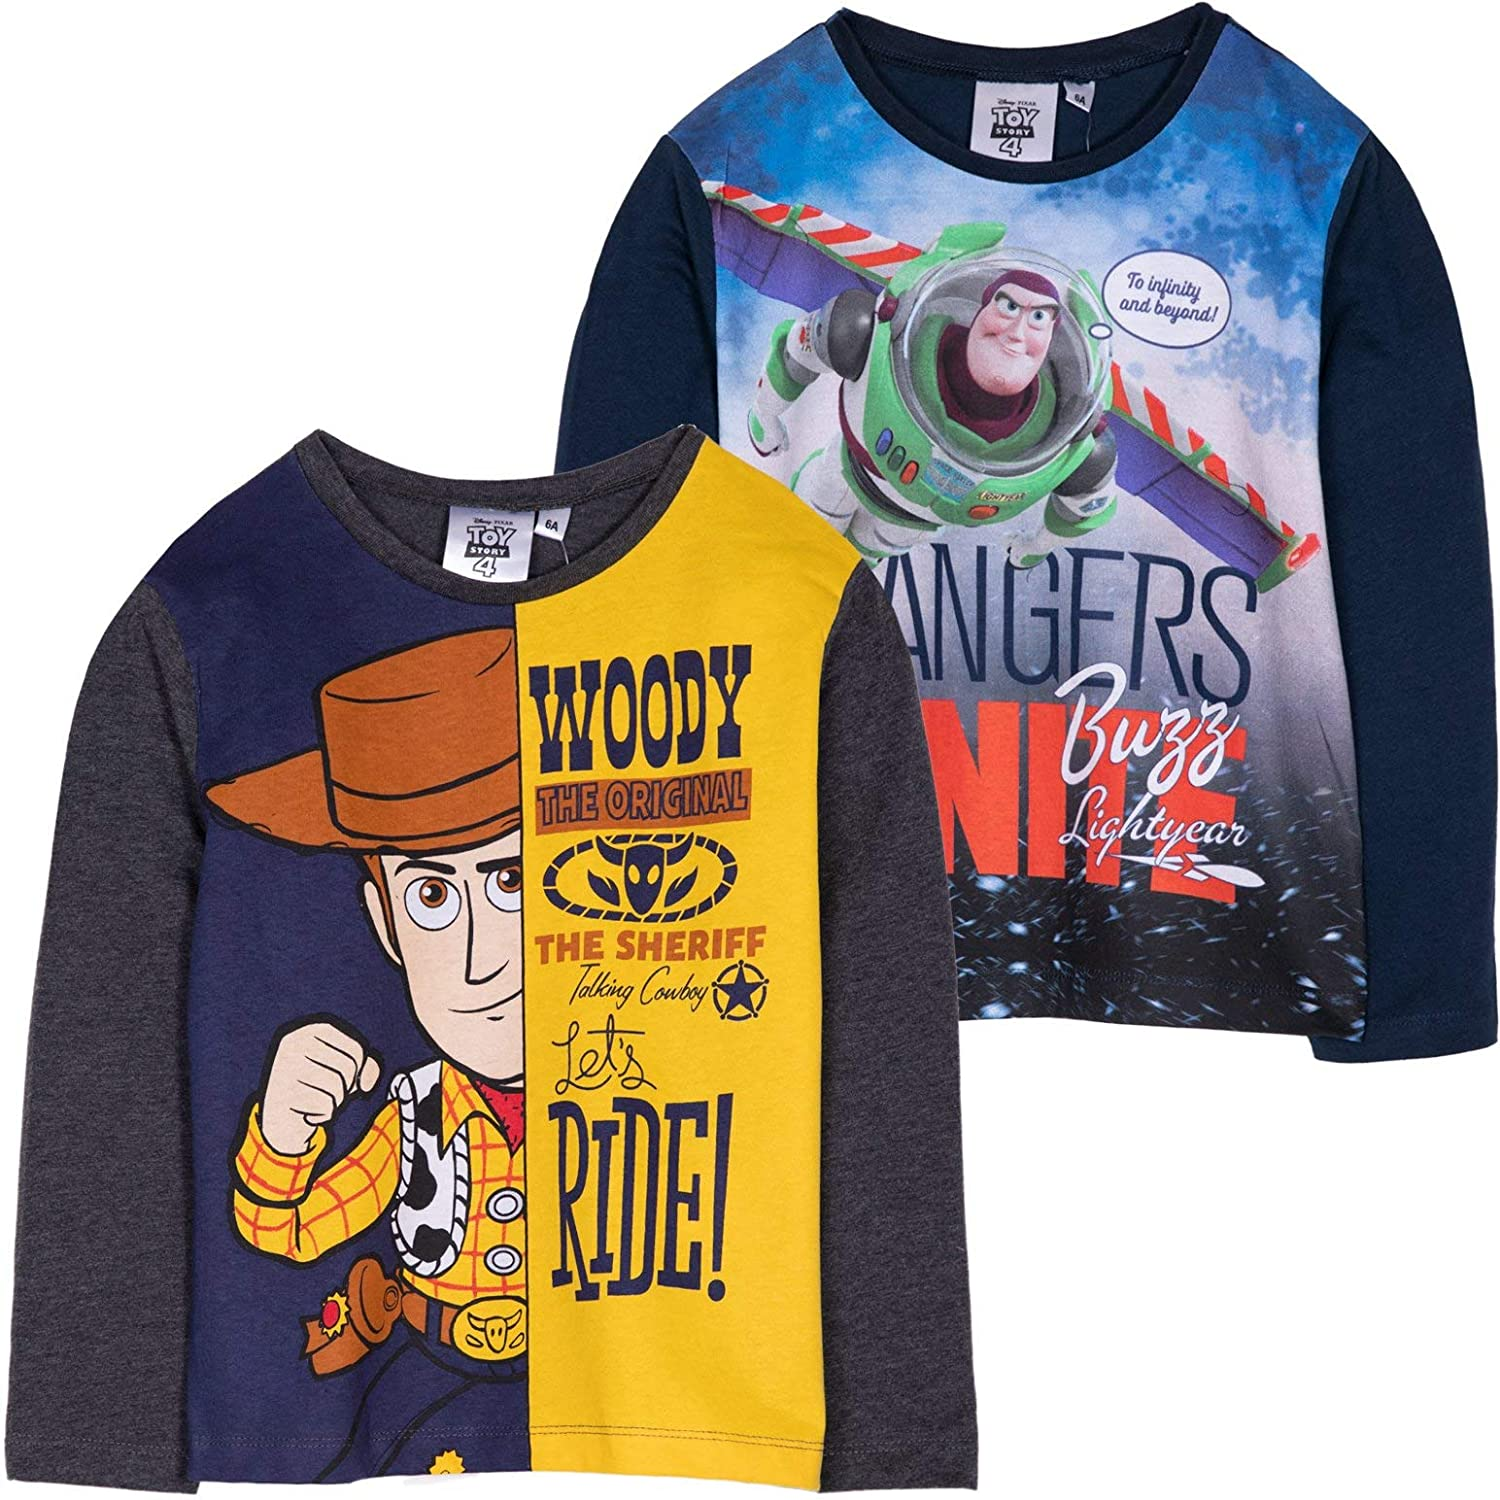 Disney Toy Story 4 Long Sleeve 100/% Cotton Top T-Shirt with Sheriff Woody Buzz Lightyear Characters Picture 2-8 Years